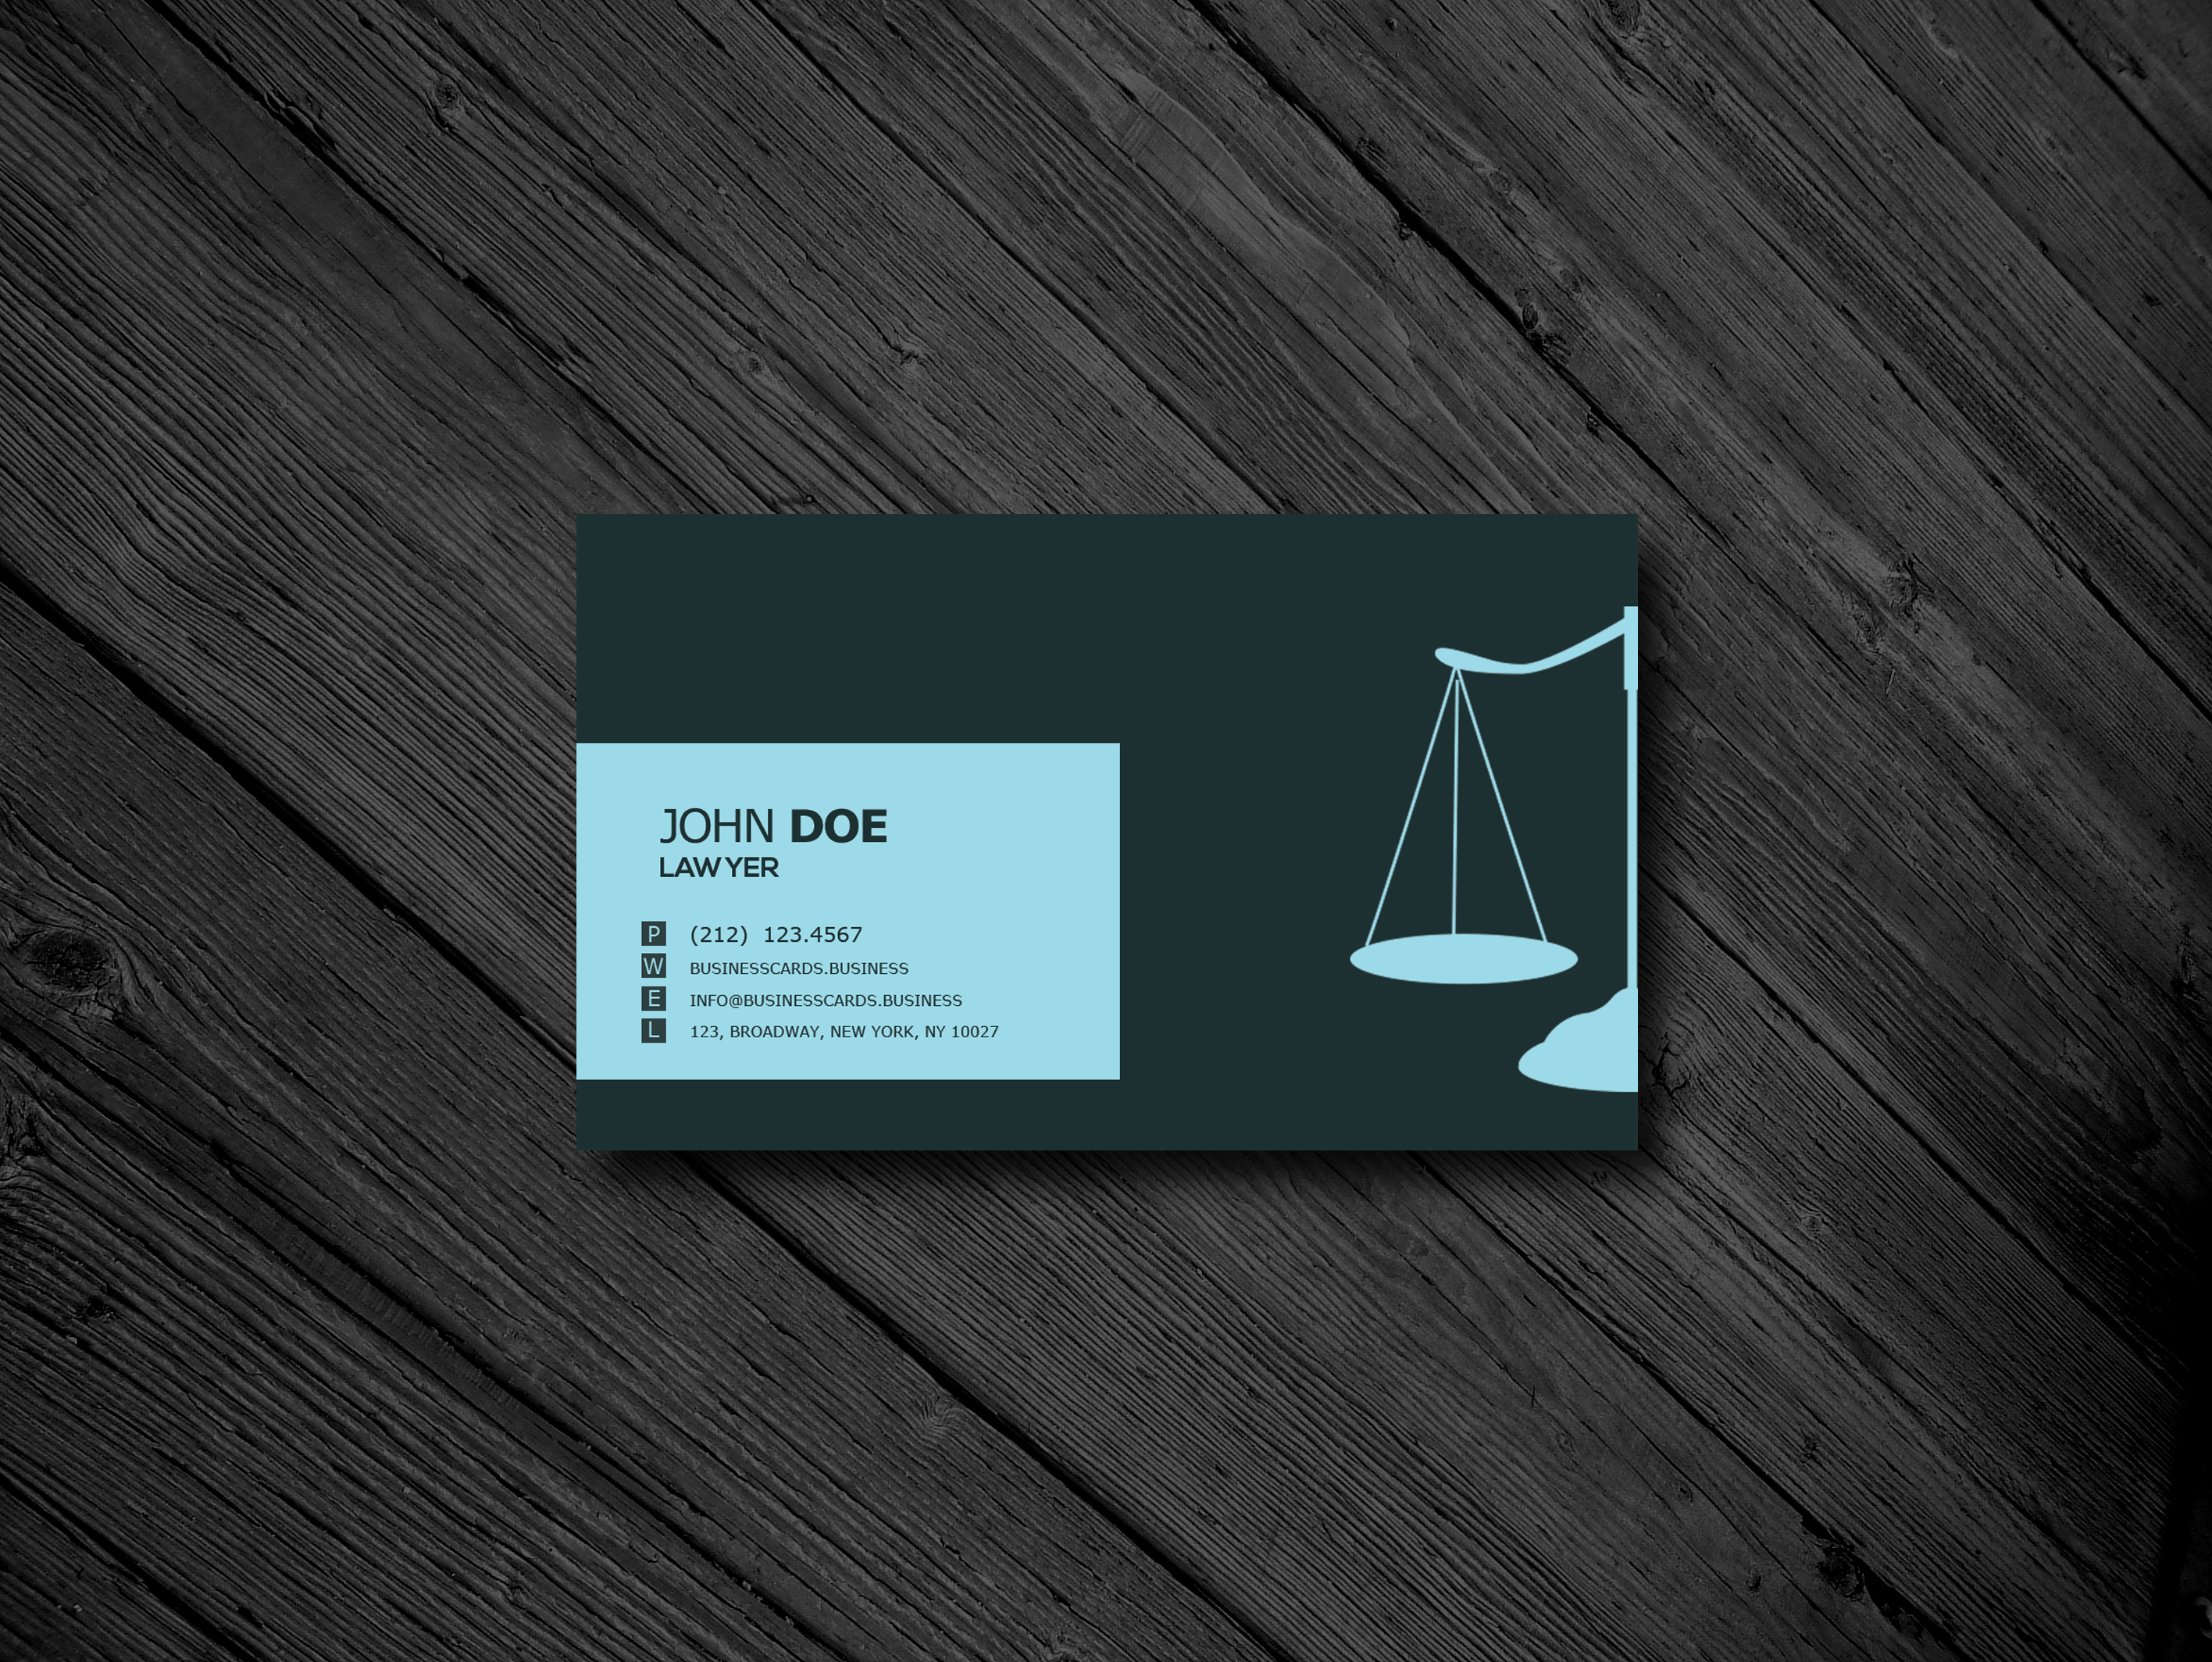 Free Business Card Templates Business Cards Templates - Free business cards template